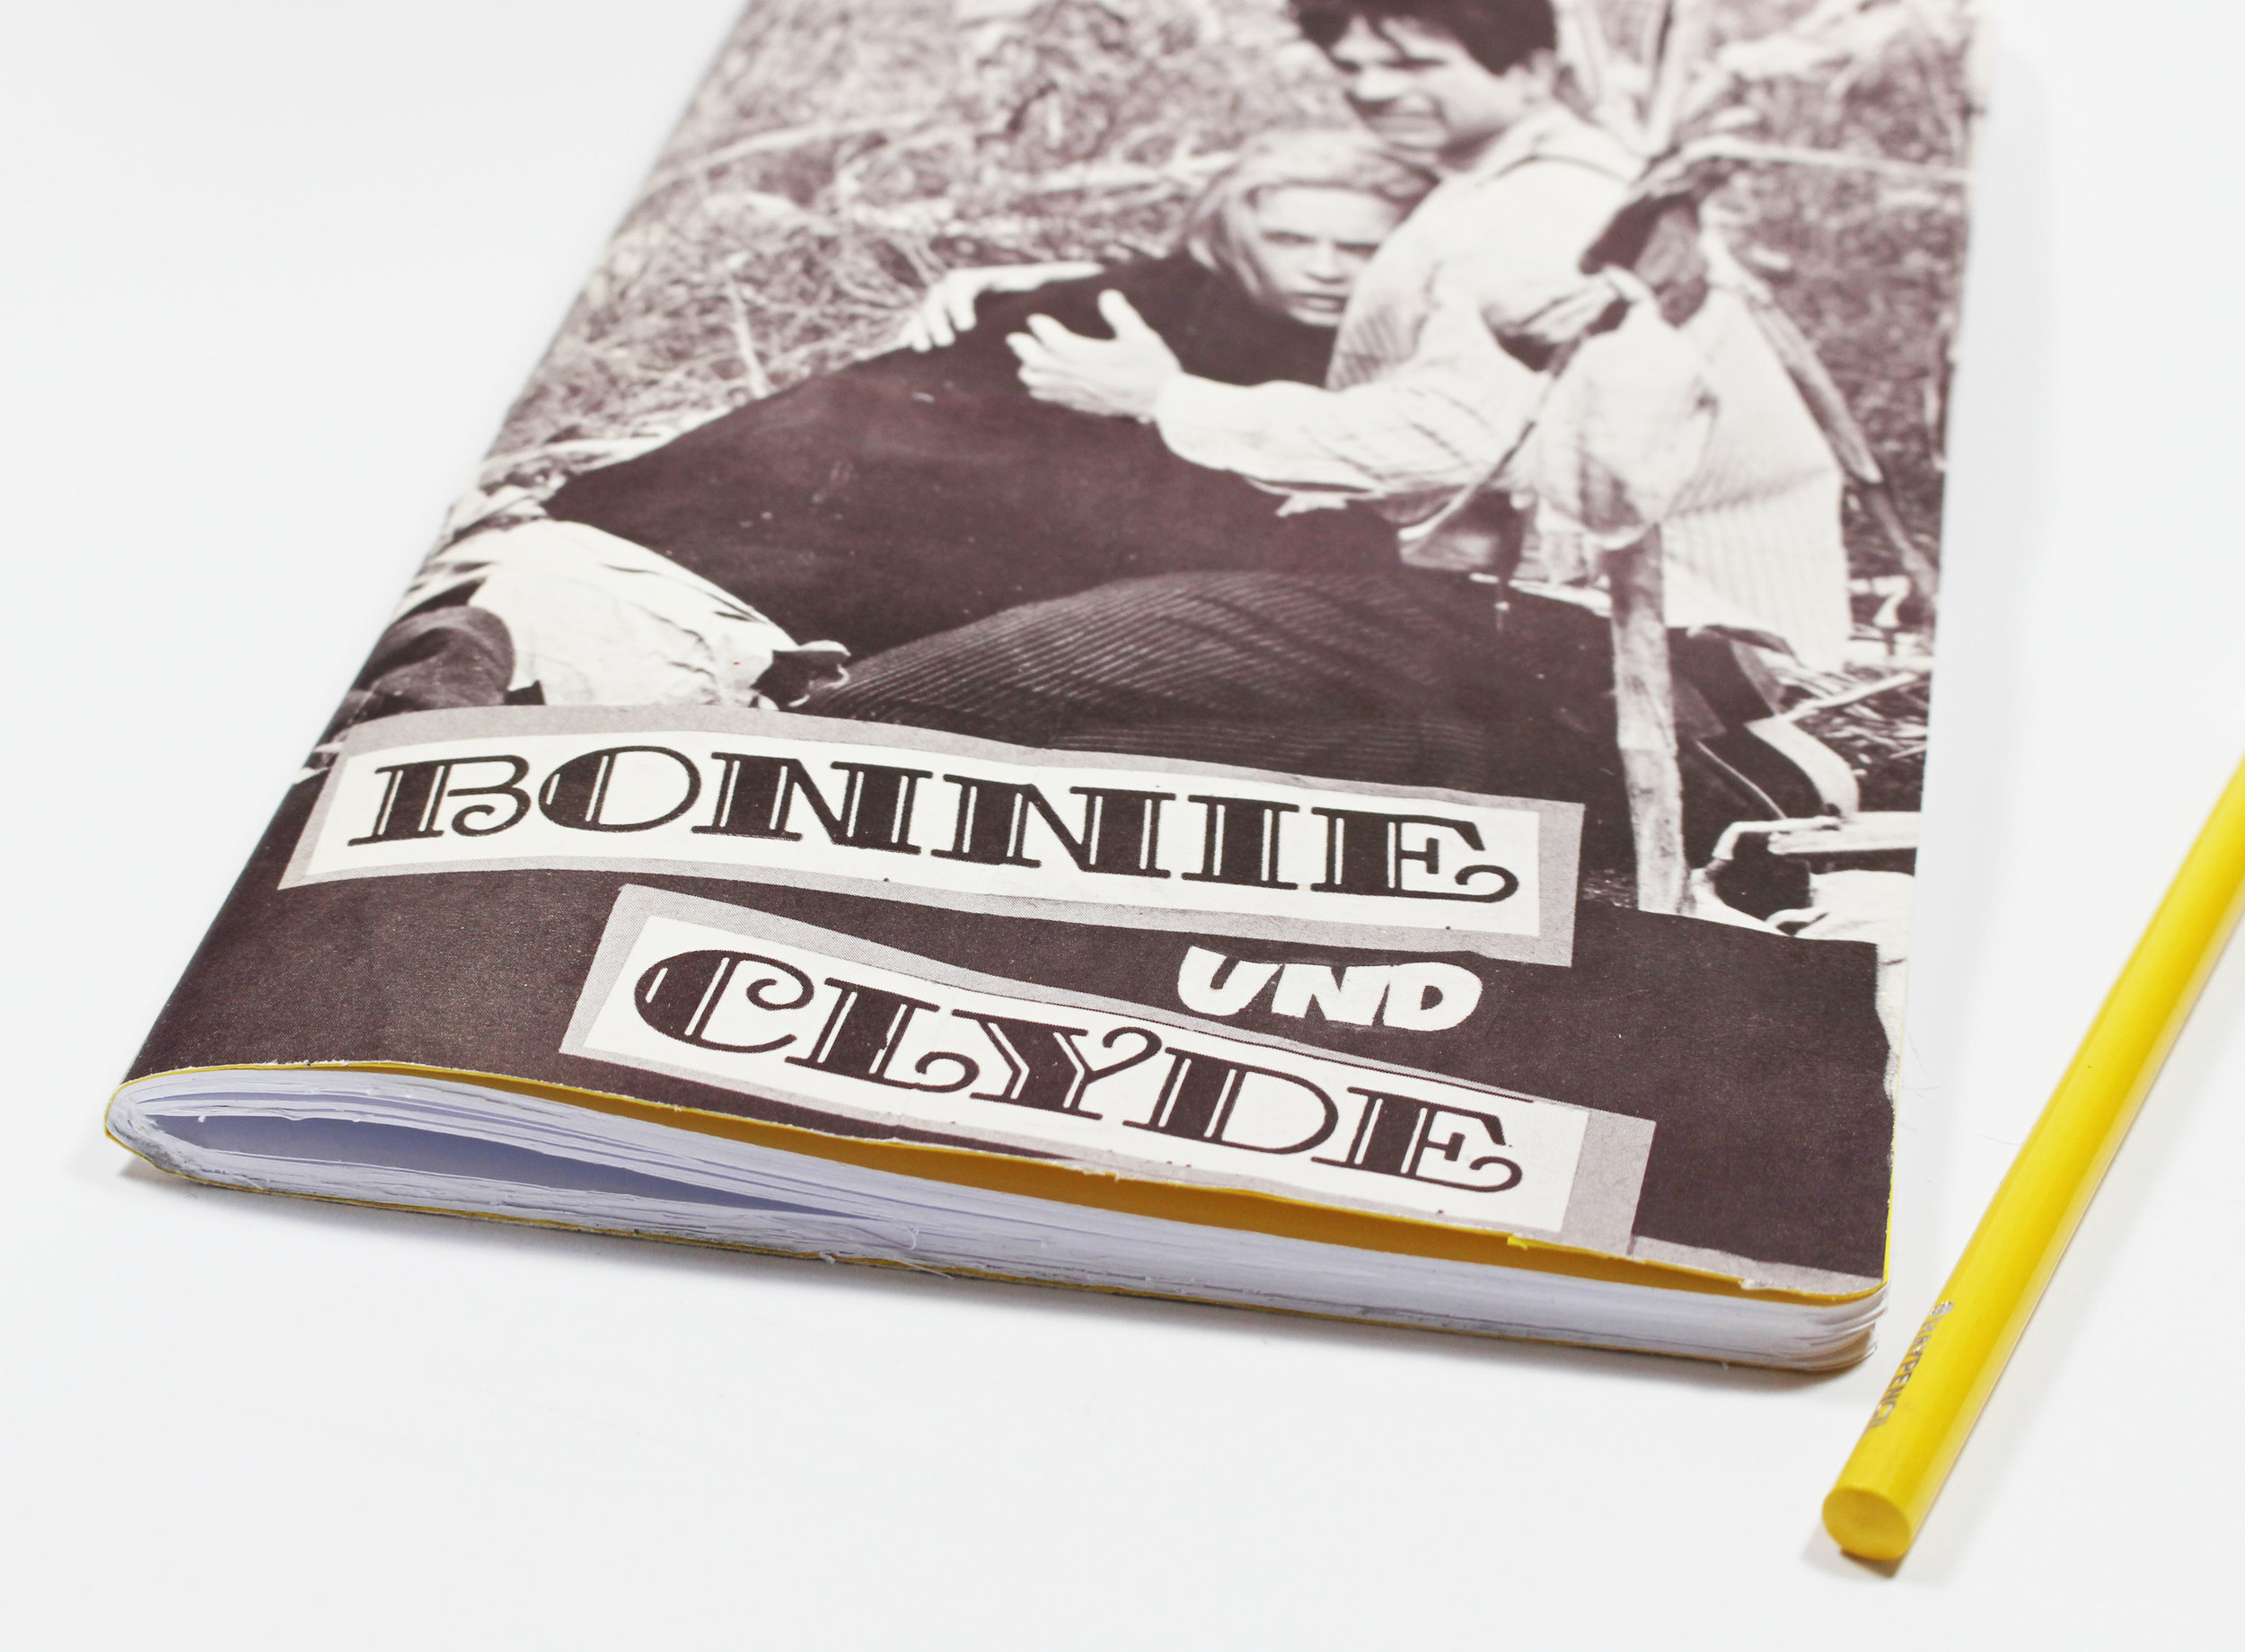 vintage-journal-Bonnie Clyde_2.JPG